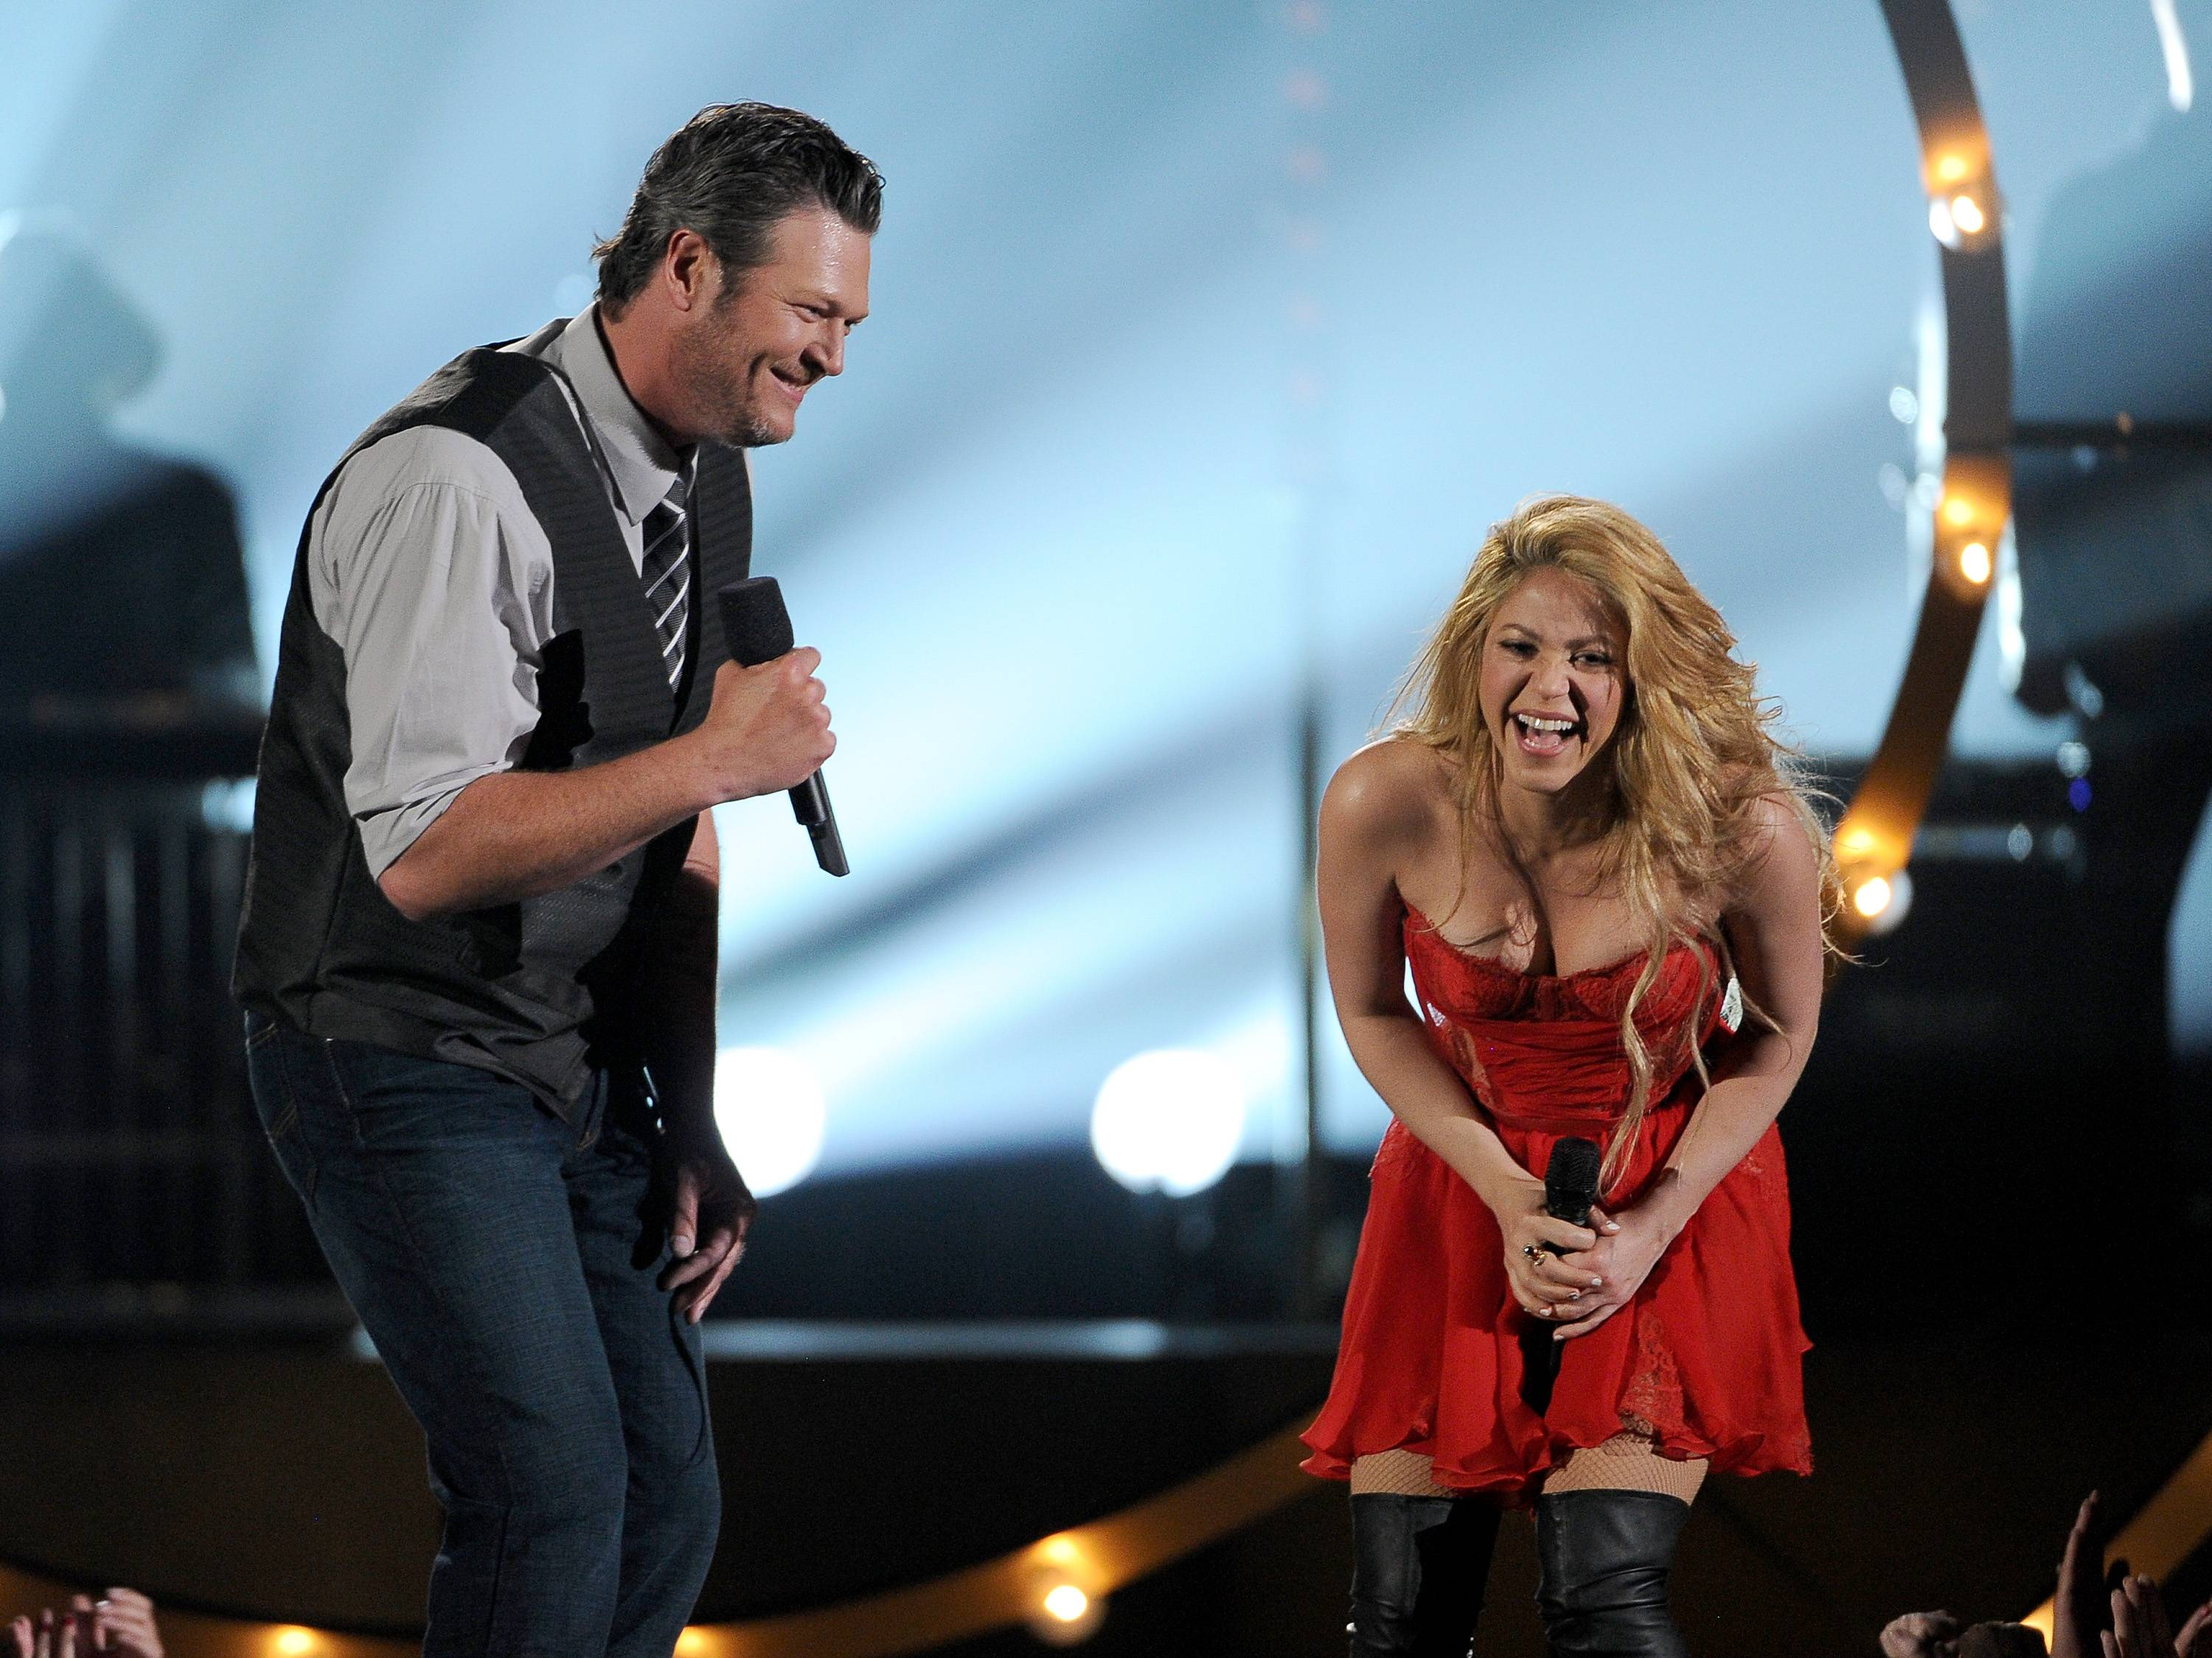 Blake Shelton and Shakira perform on stage at the 49th annual Academy of Country Music Awards.